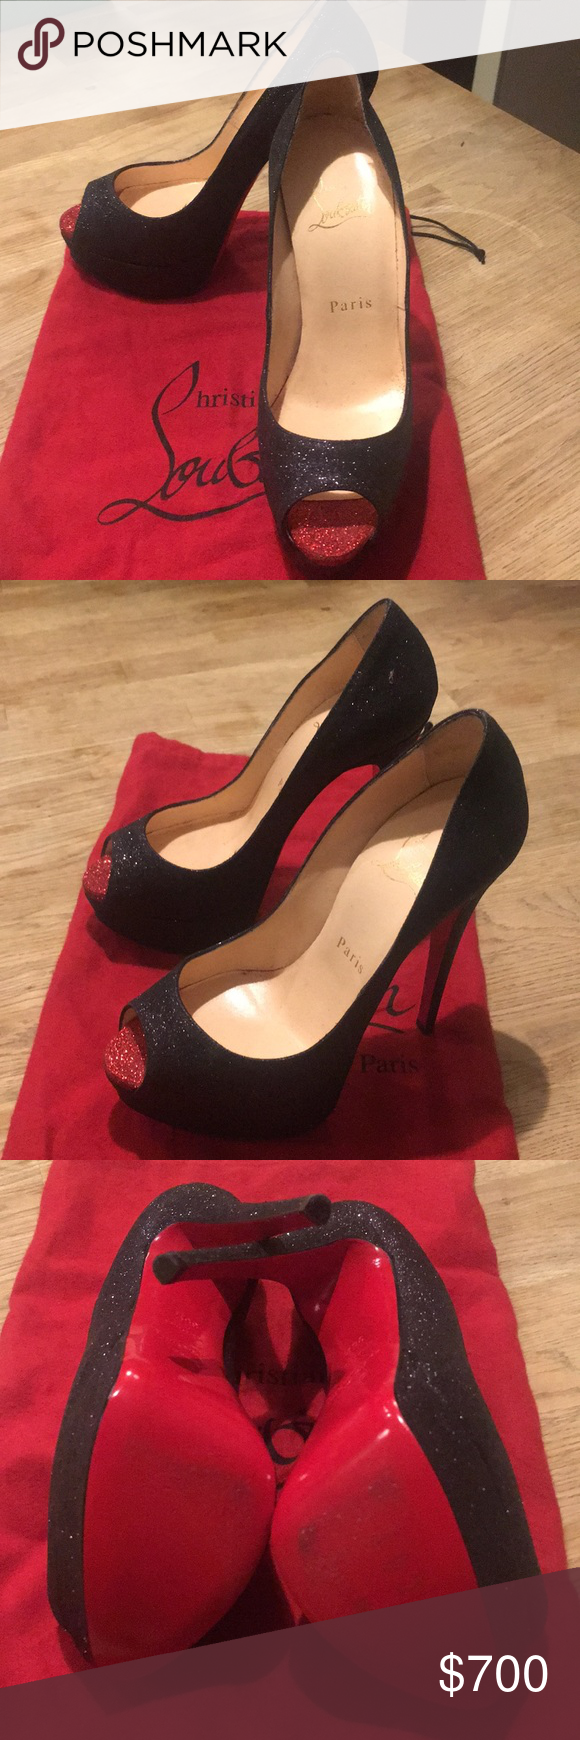 5169d0775adc Christian Louboutin Black Glitter Lady Peeps Louboutin Lady Peeps.  Practically brand new. Worn once to walk from my car to a restaurant.